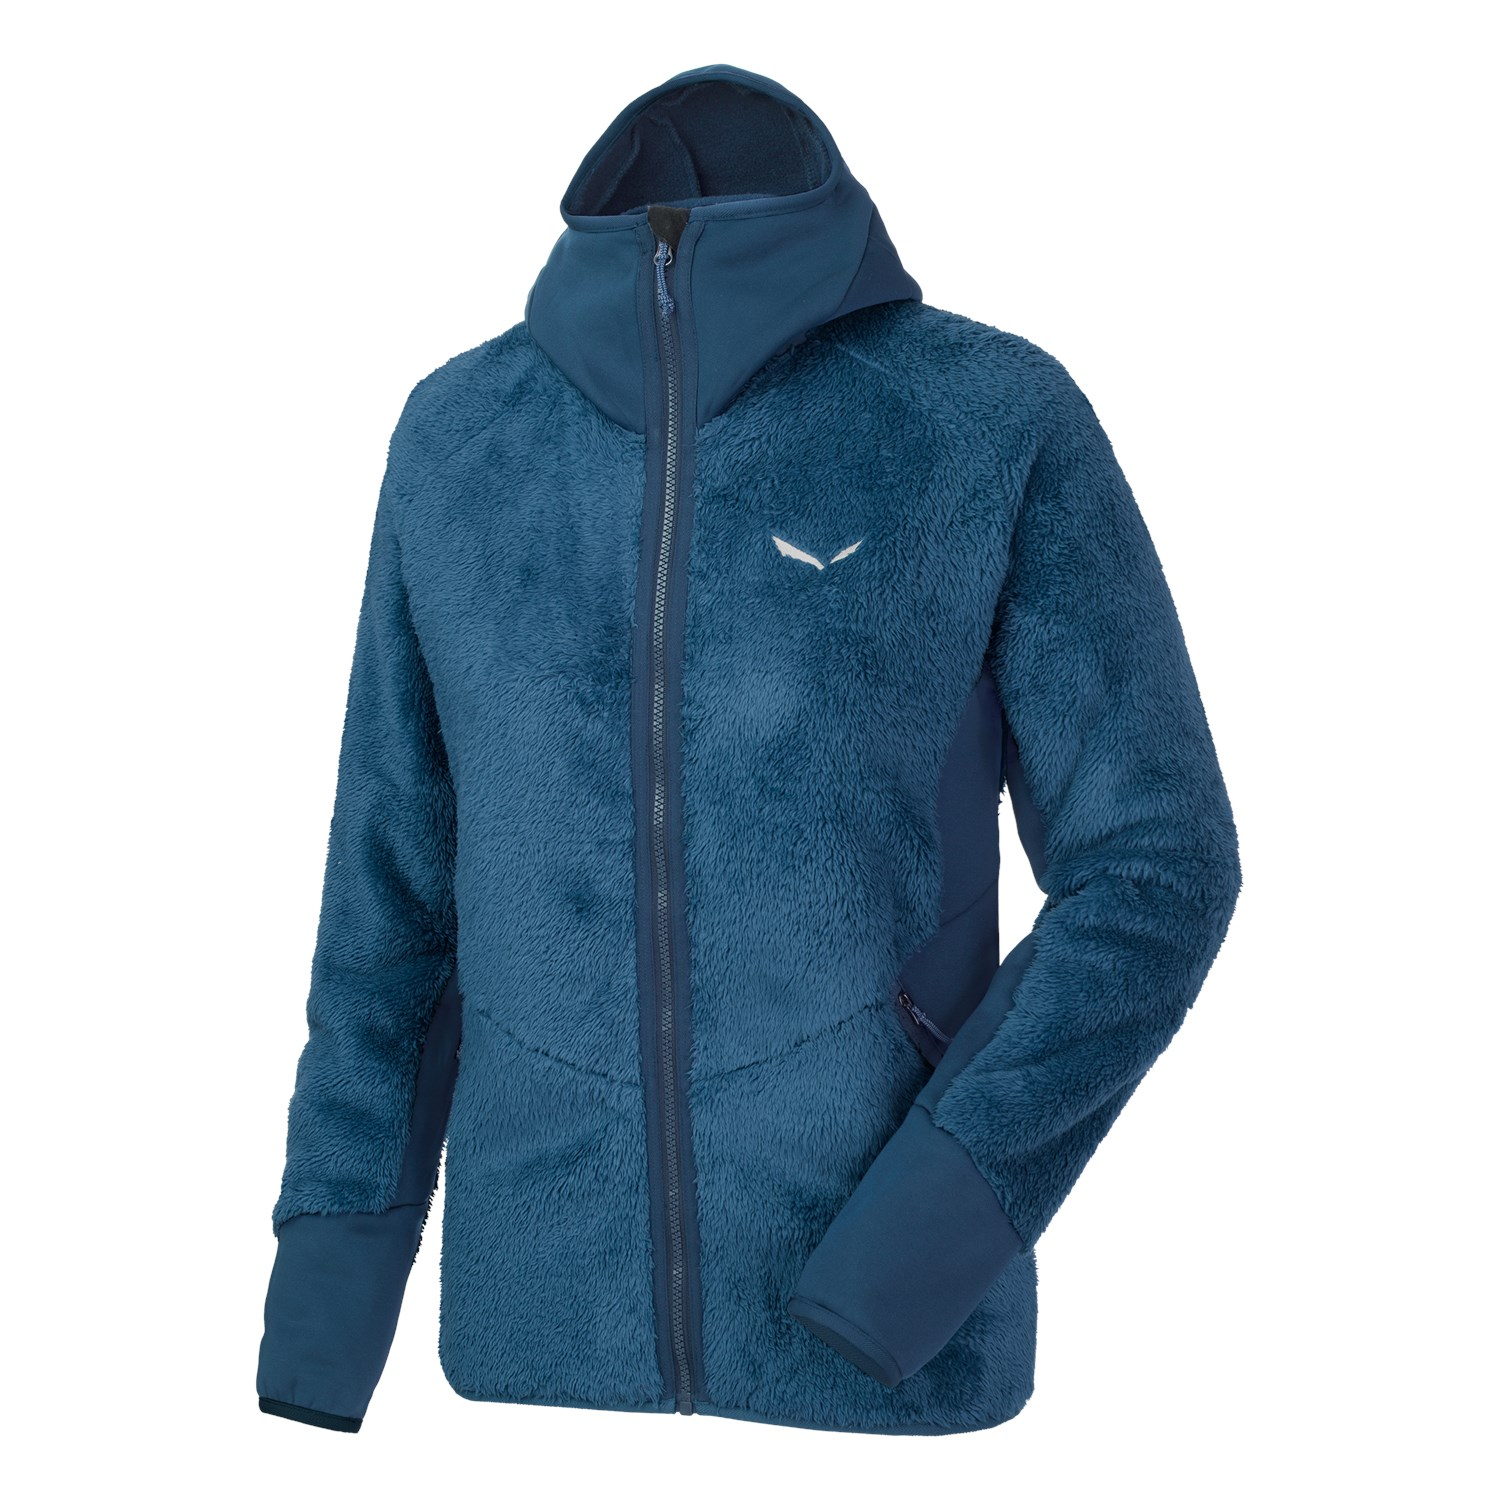 Salewa Damen Puez Warm Polarlite Full-Zip Hoody - blue poseidon -